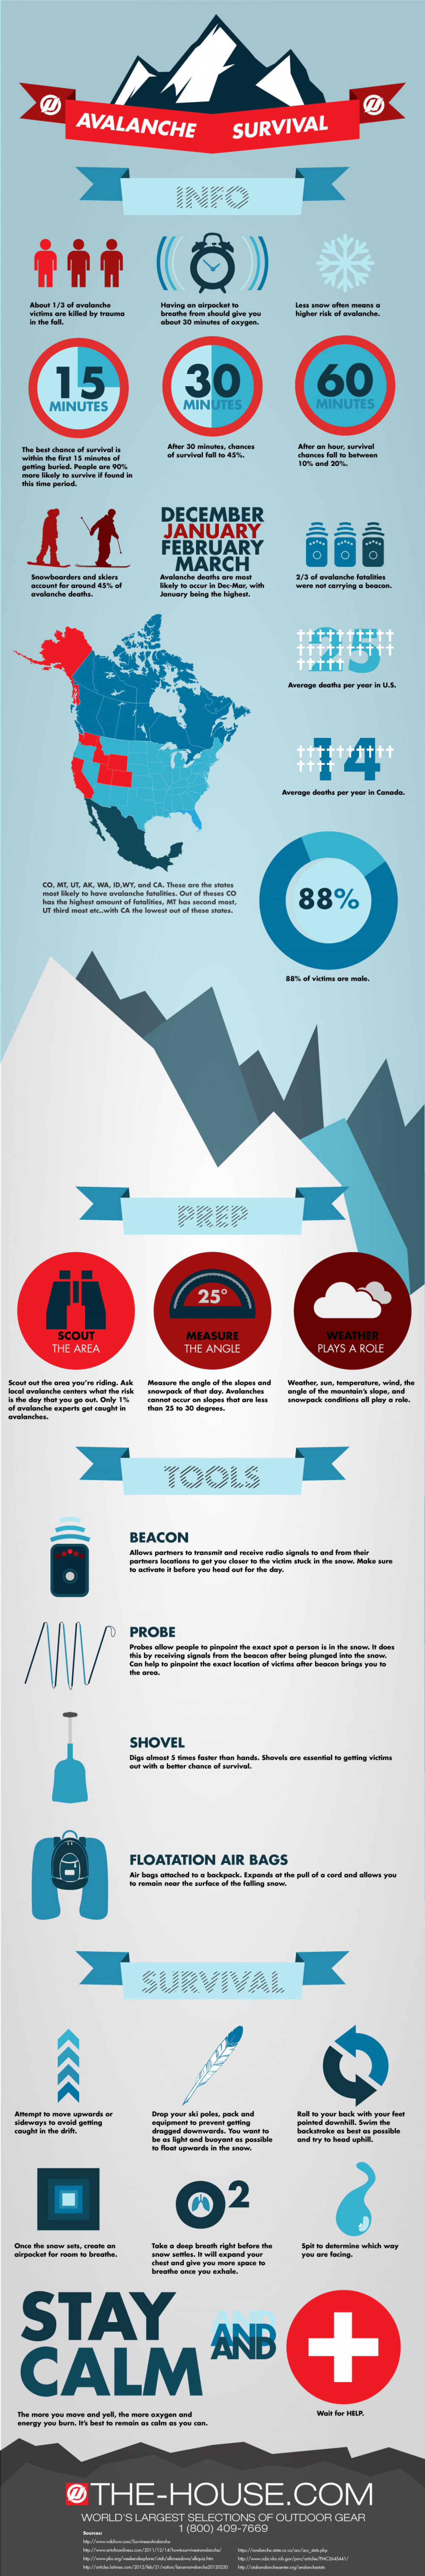 Avalanche Survival Infographic